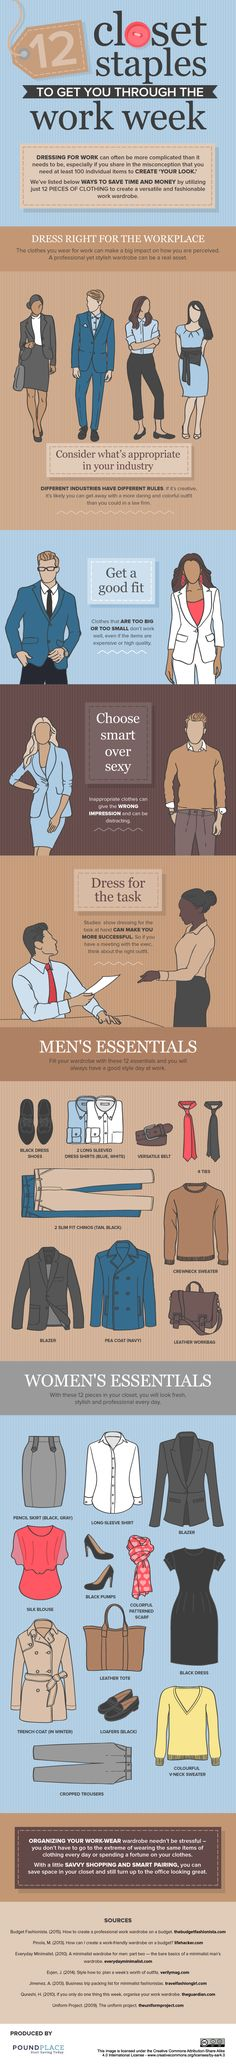 12 Closet Staples To Get You Through The Work Week #Infographic #Fashion #Design